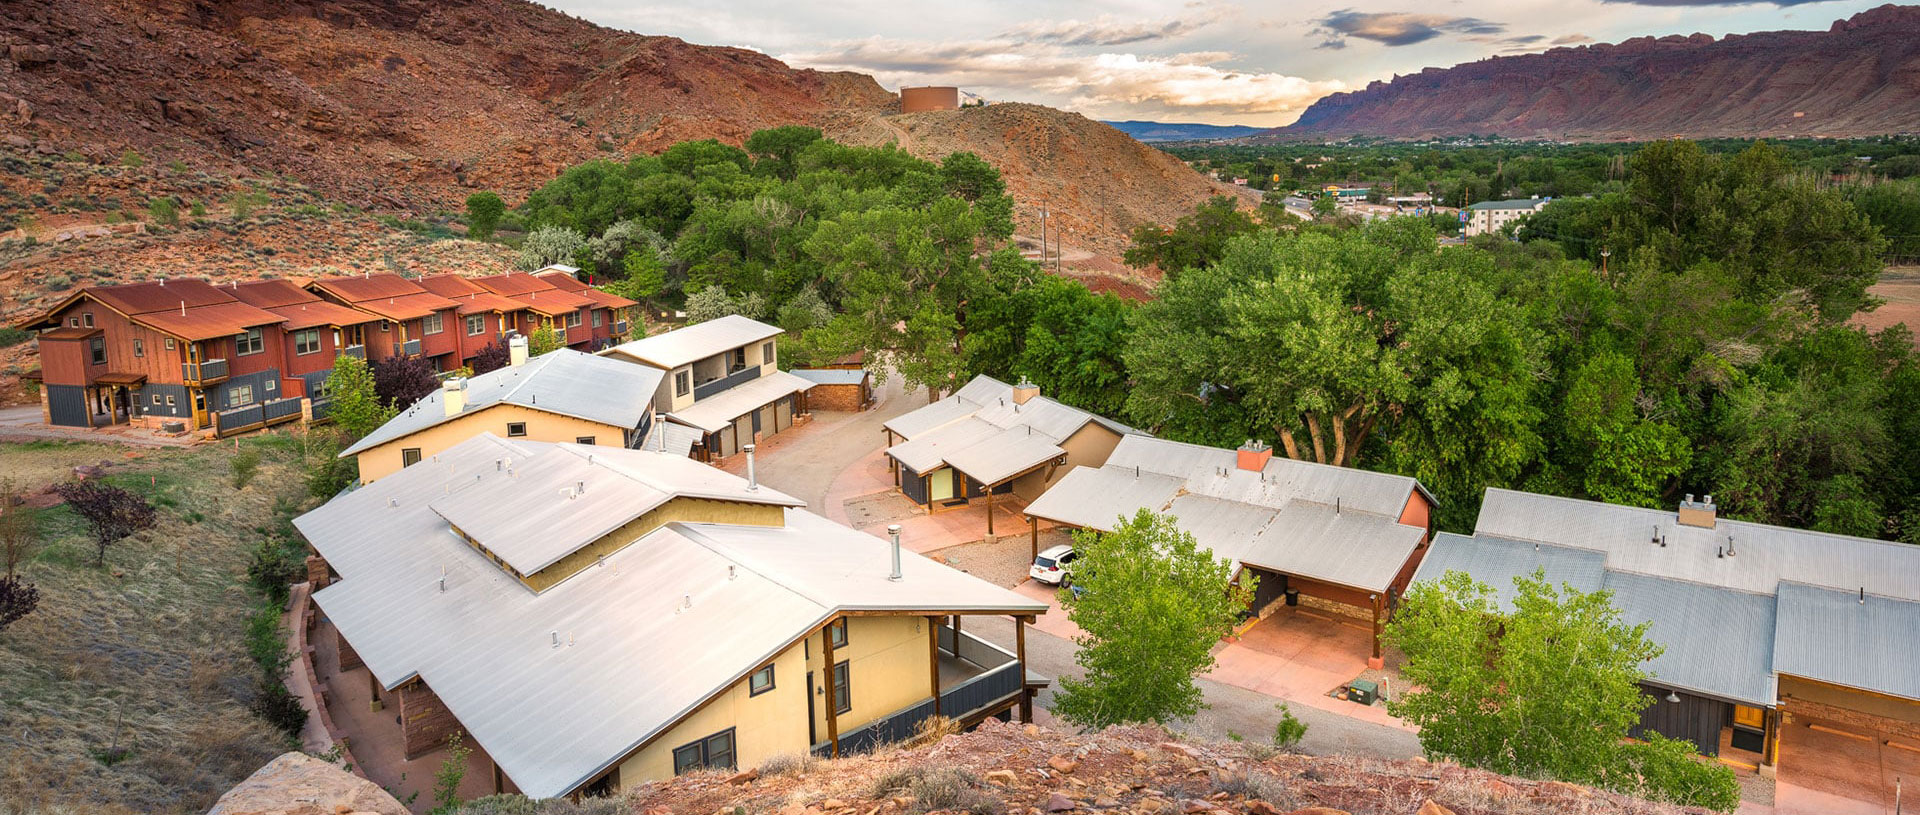 An aerial view overlooking the trees, roads, mountainsides and the roofs of townhouses and bungalows on the Moab Springs Ranch property.